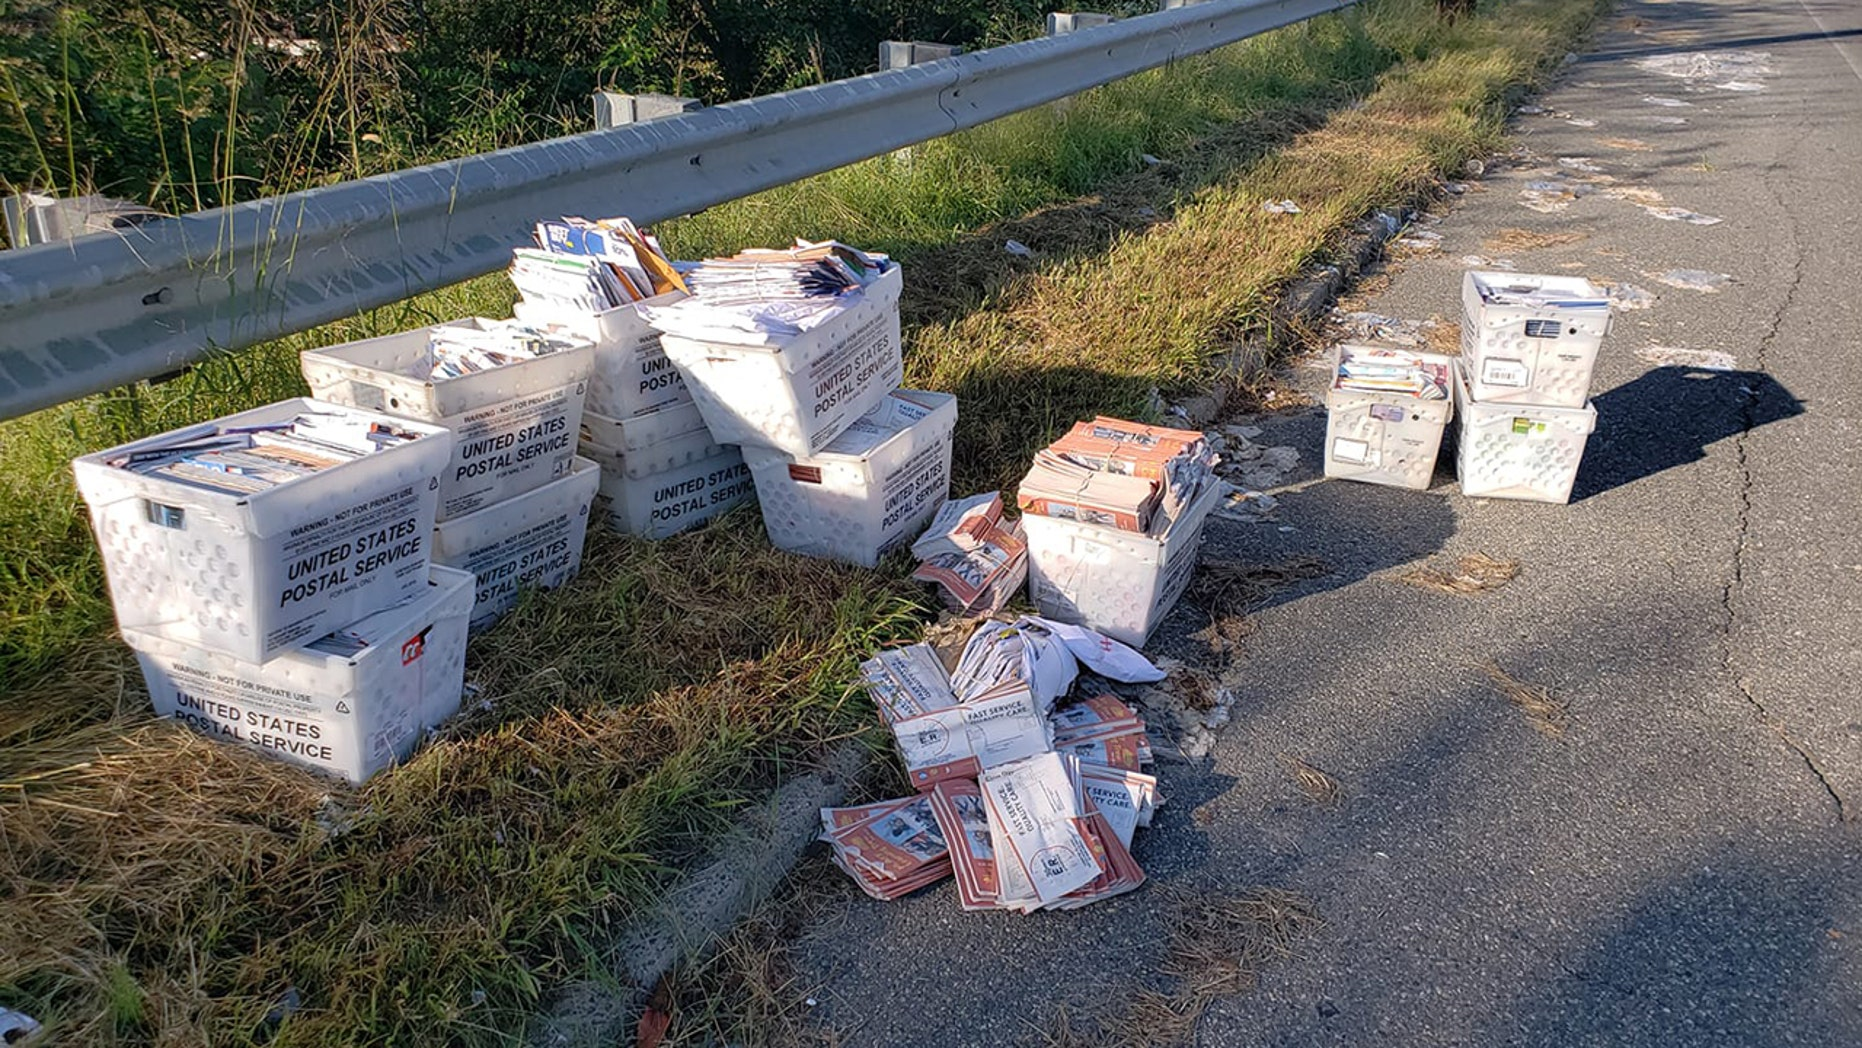 A photo of mail dumped on the side of a road in South New Jersey went viral.